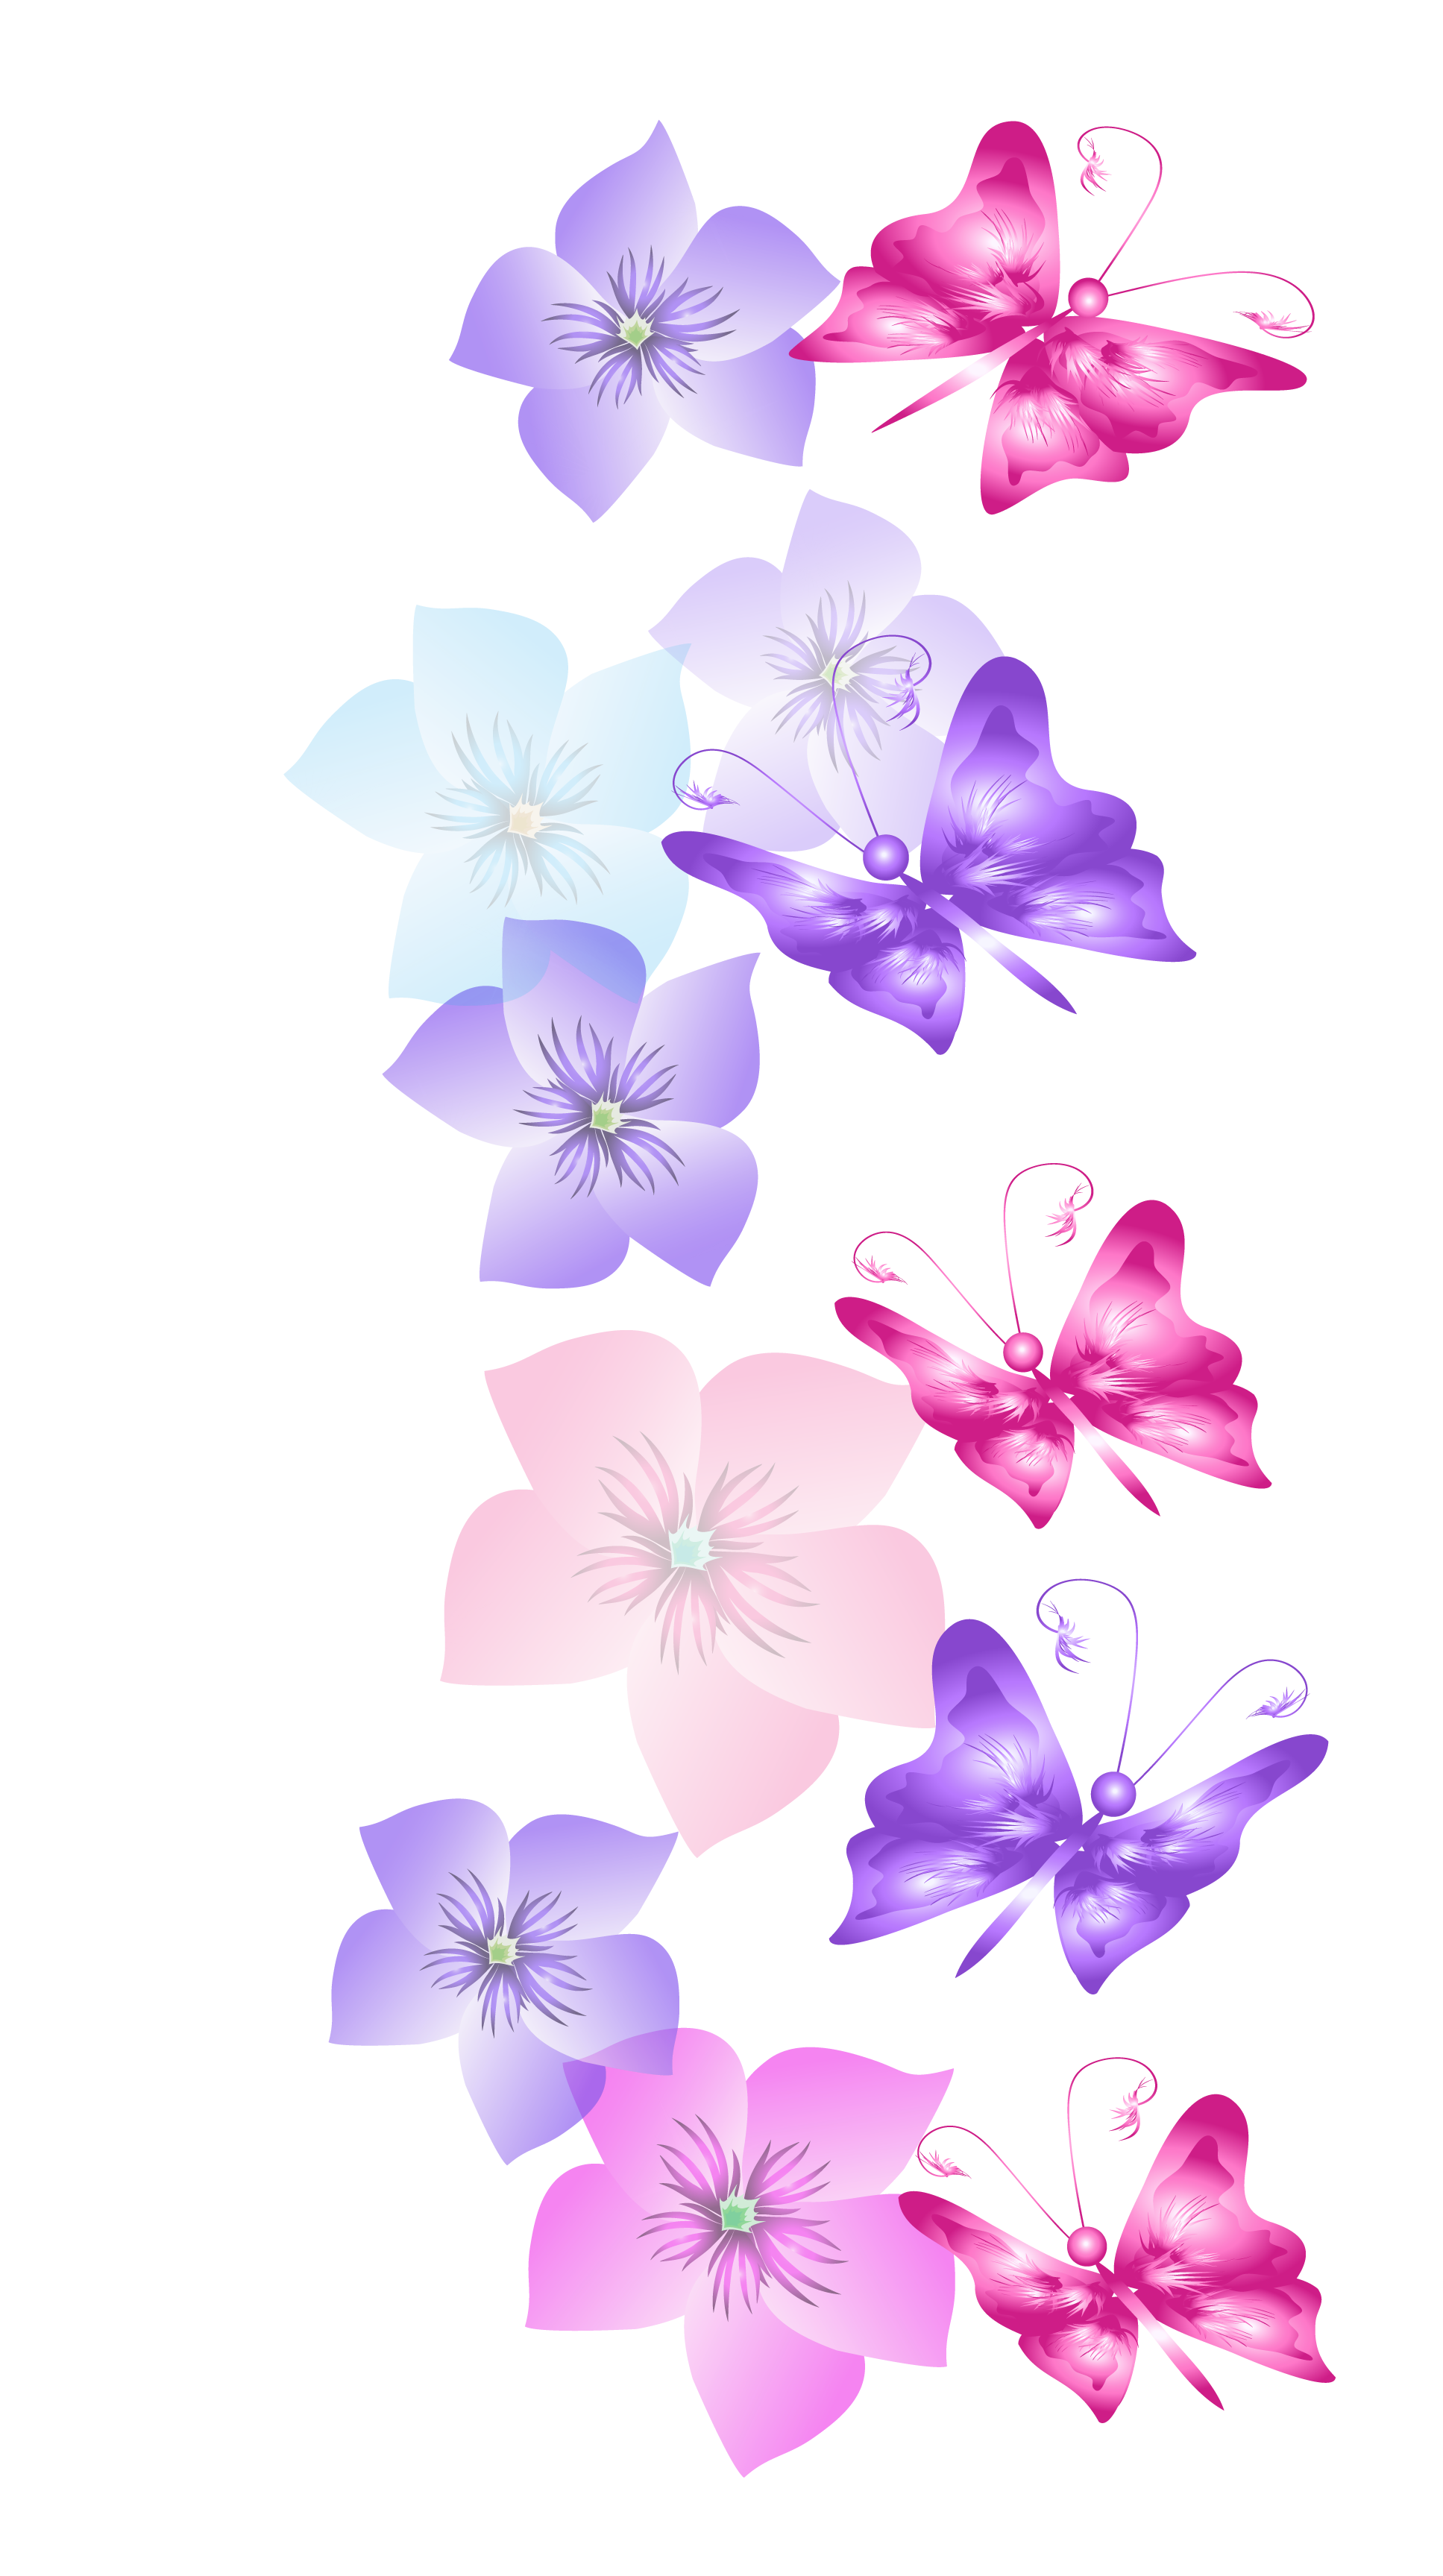 Flower clipart butterfly. Butterflies and flowers decoration